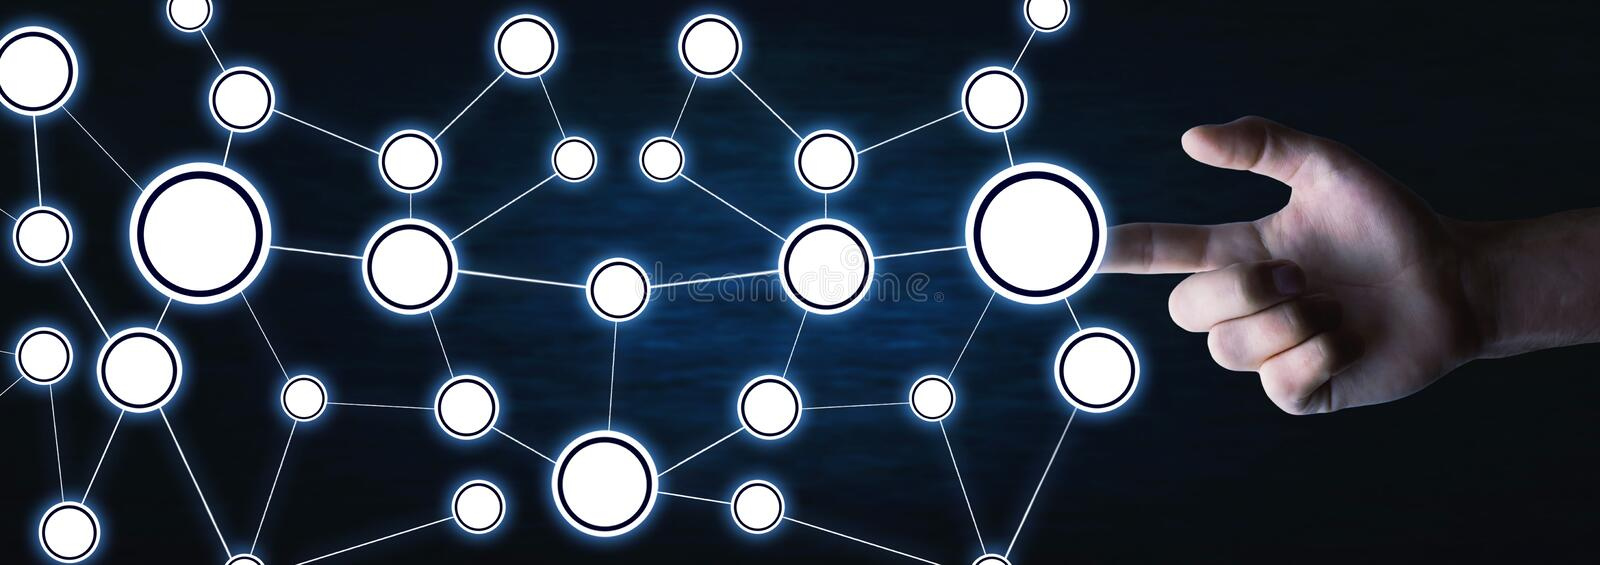 Concept of Network. Internet communication stock image